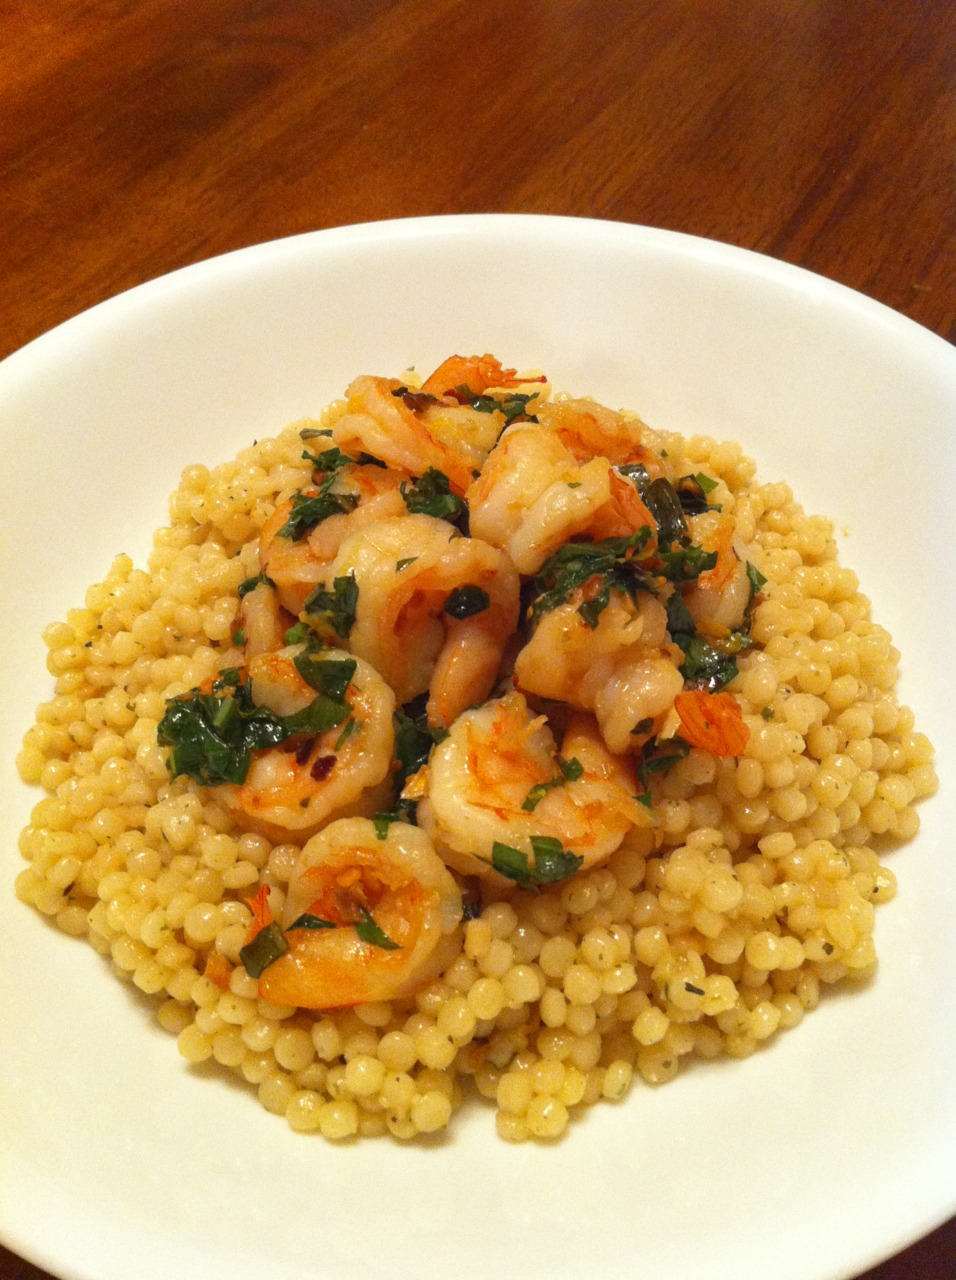 Chili, Lemon, and Basil Shrimp with Pearled (Israeli) Couscous recipe from The Kitchn. Click the link above to hop over there.